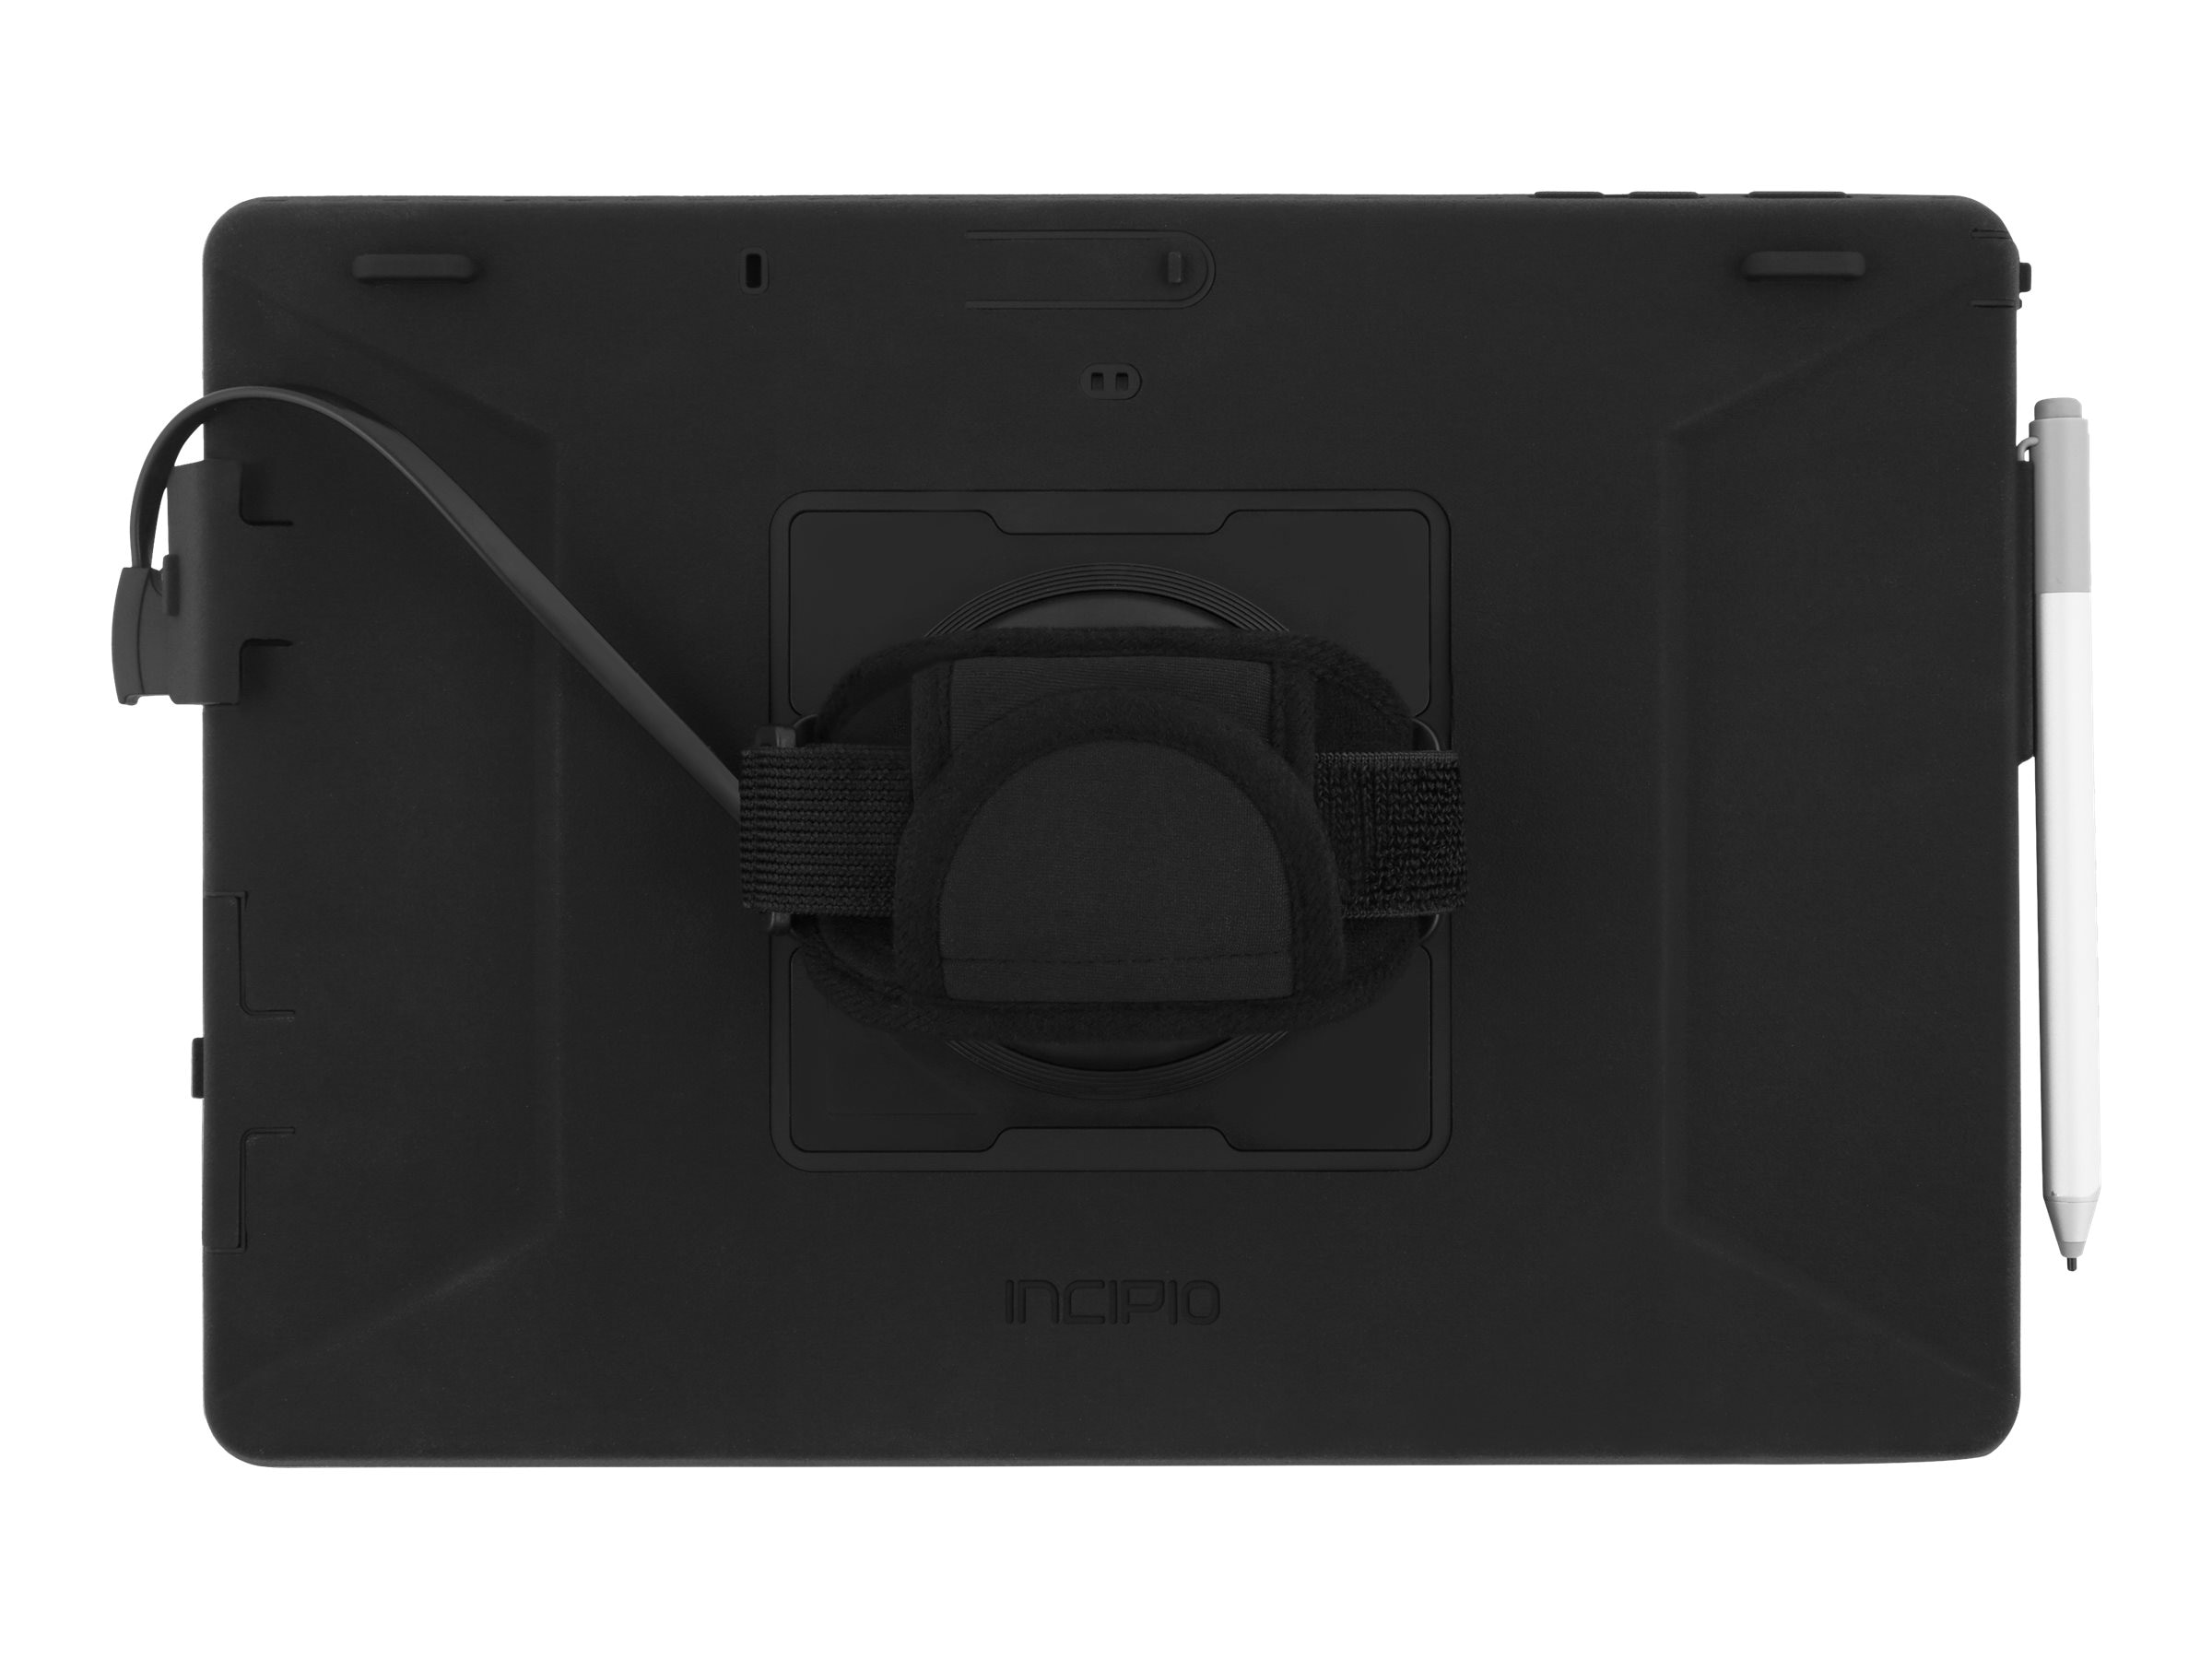 Incipio Technology PW-271-BLK Image 1